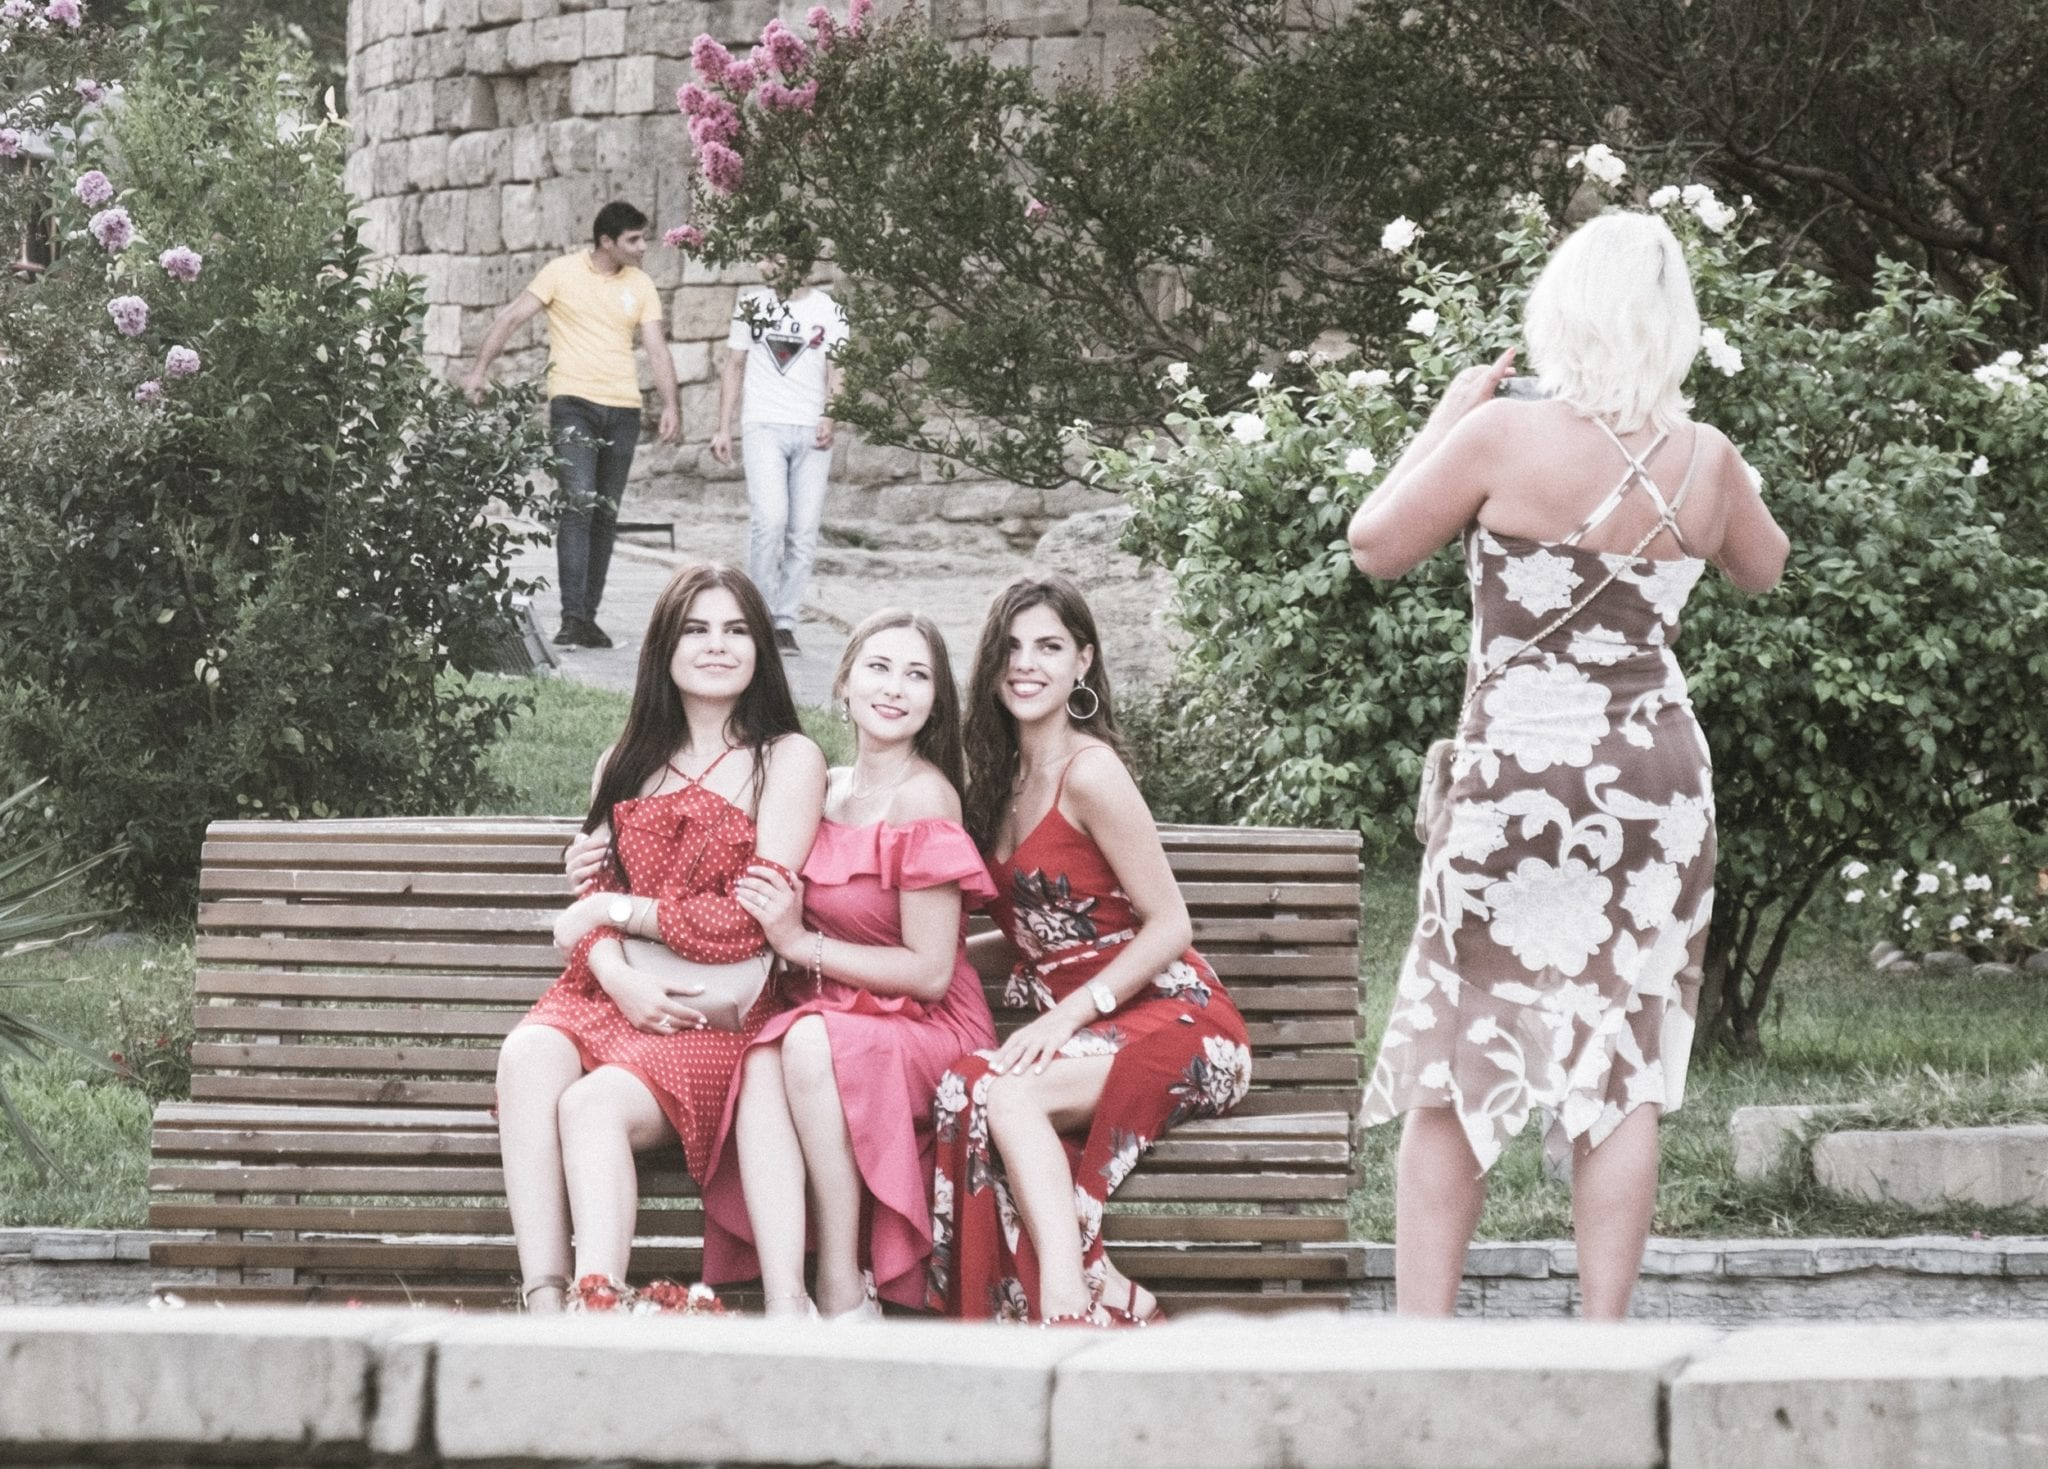 Three teenage girls in pink and red dresses sitting on a bench in the old city of Baku as a woman takes their photo.